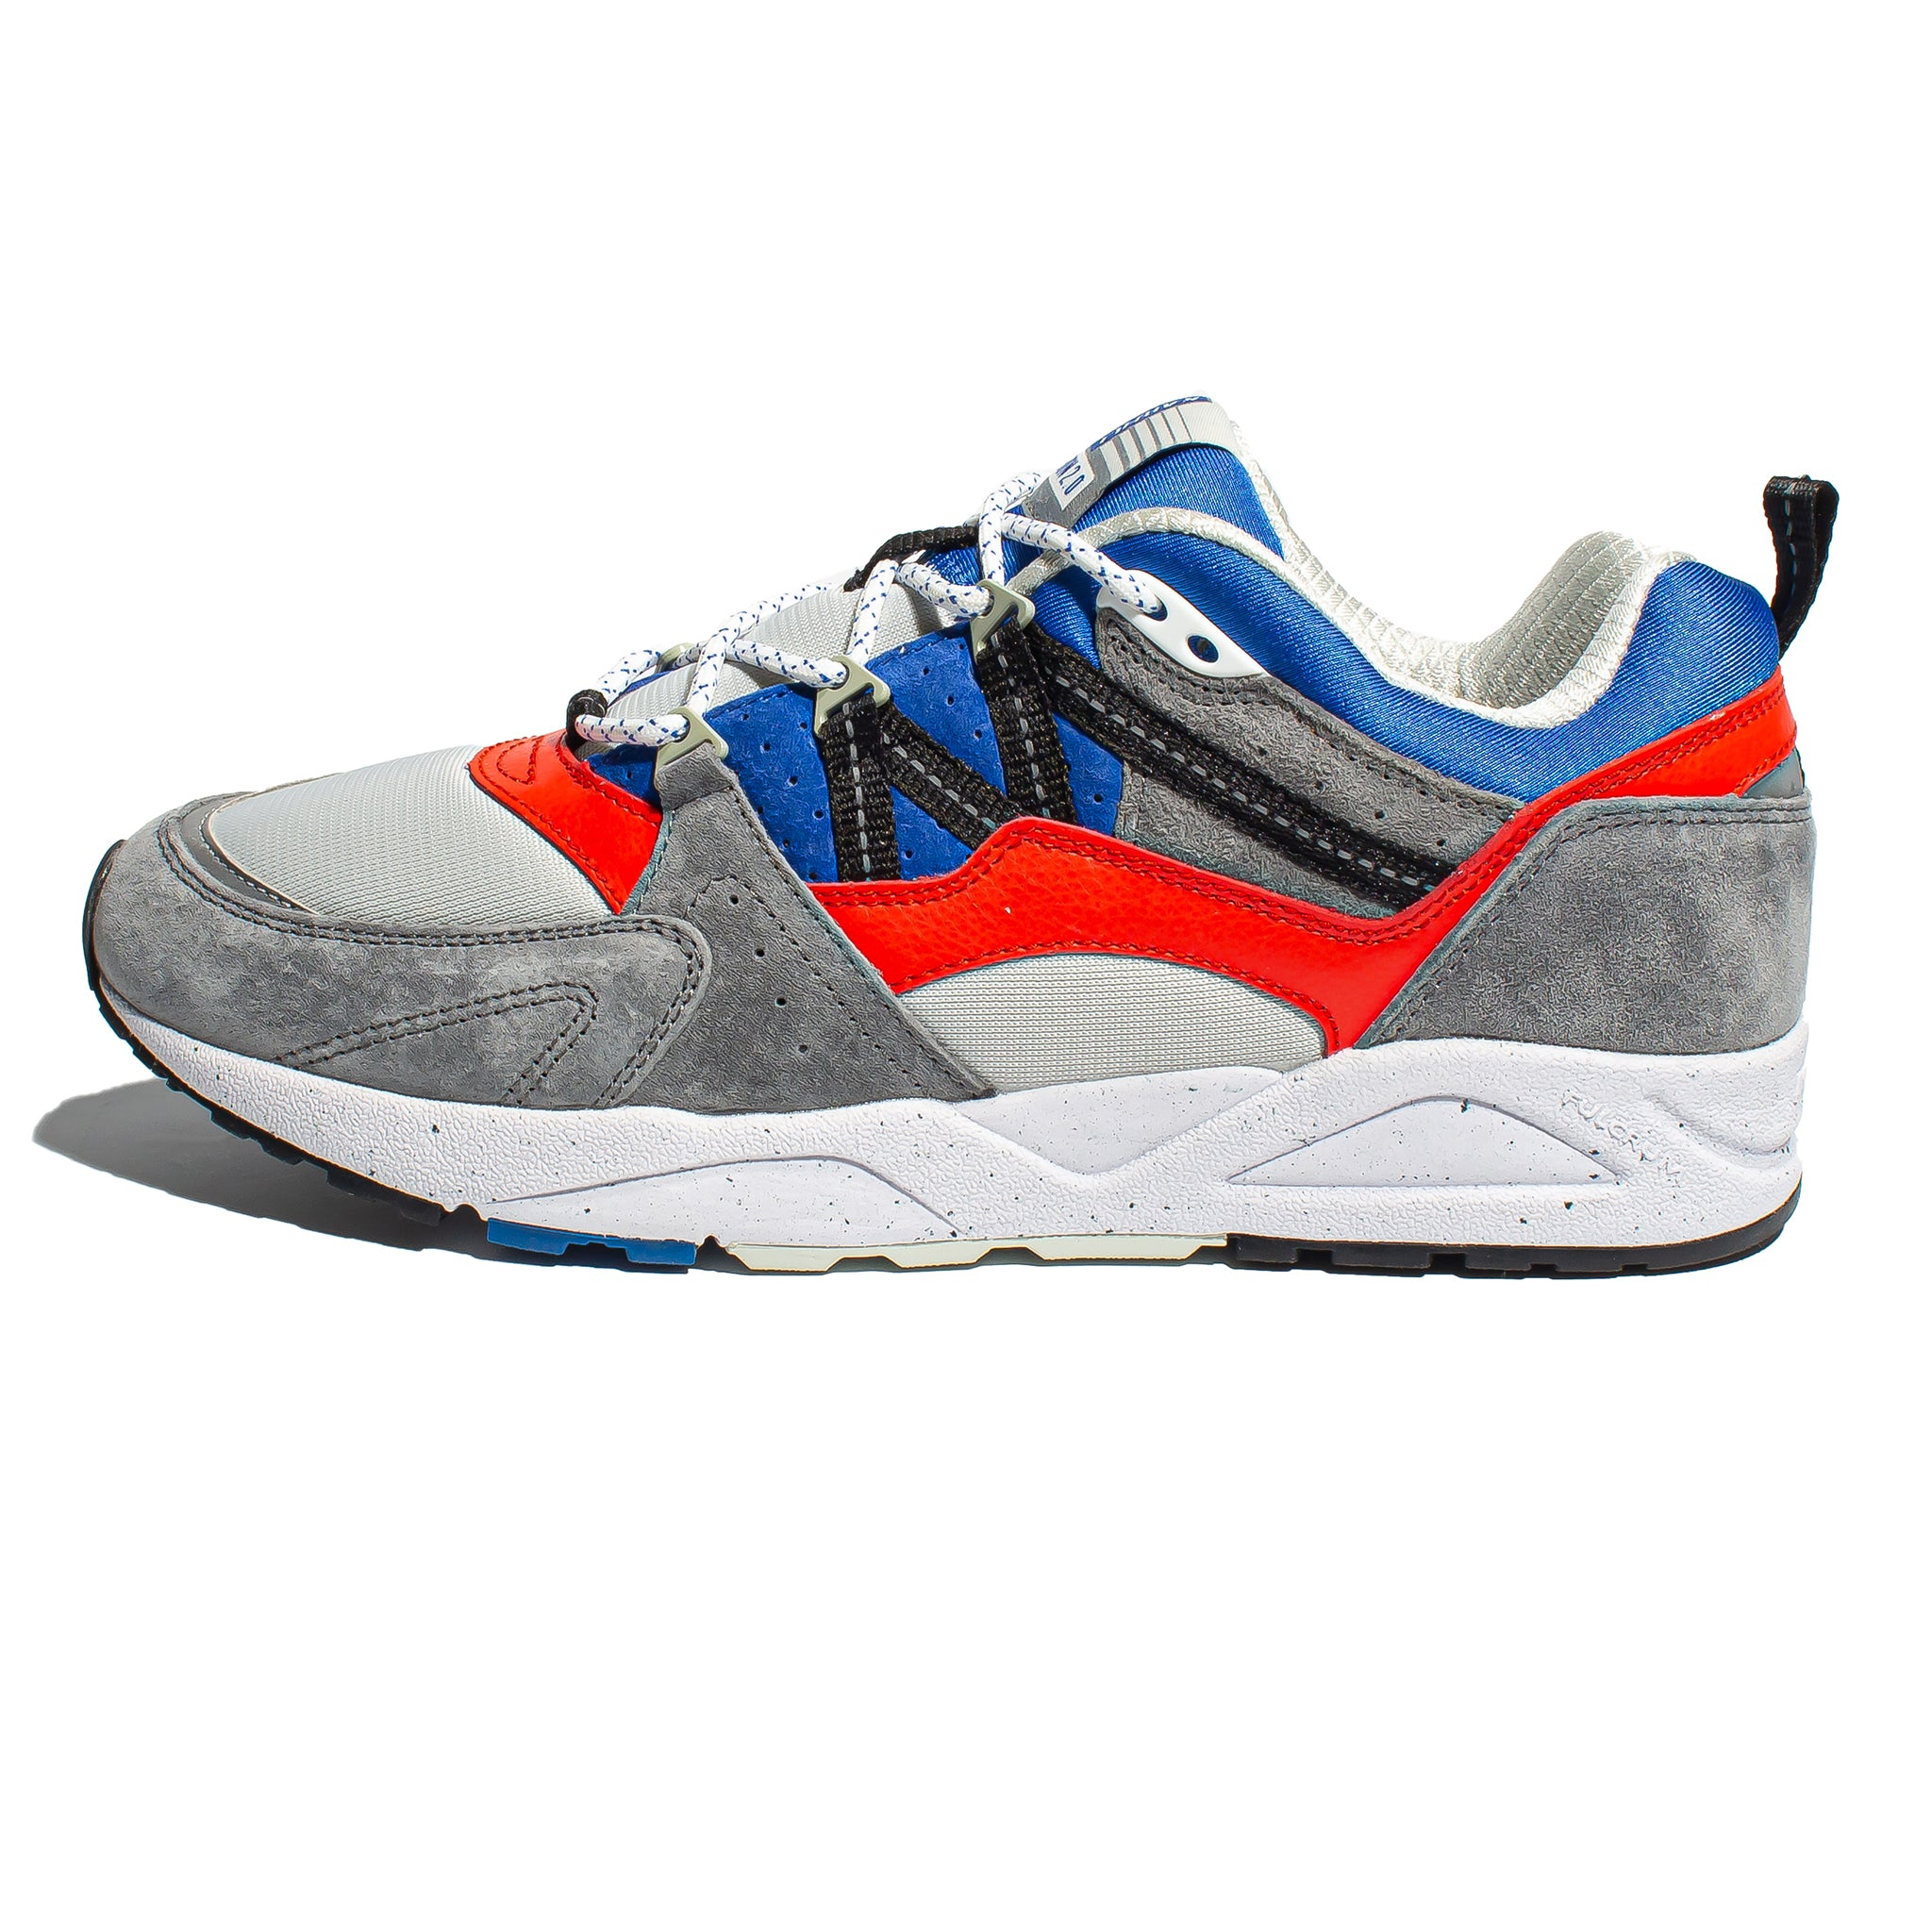 Karhu Fusion 2.0 Monument/Fiery Red